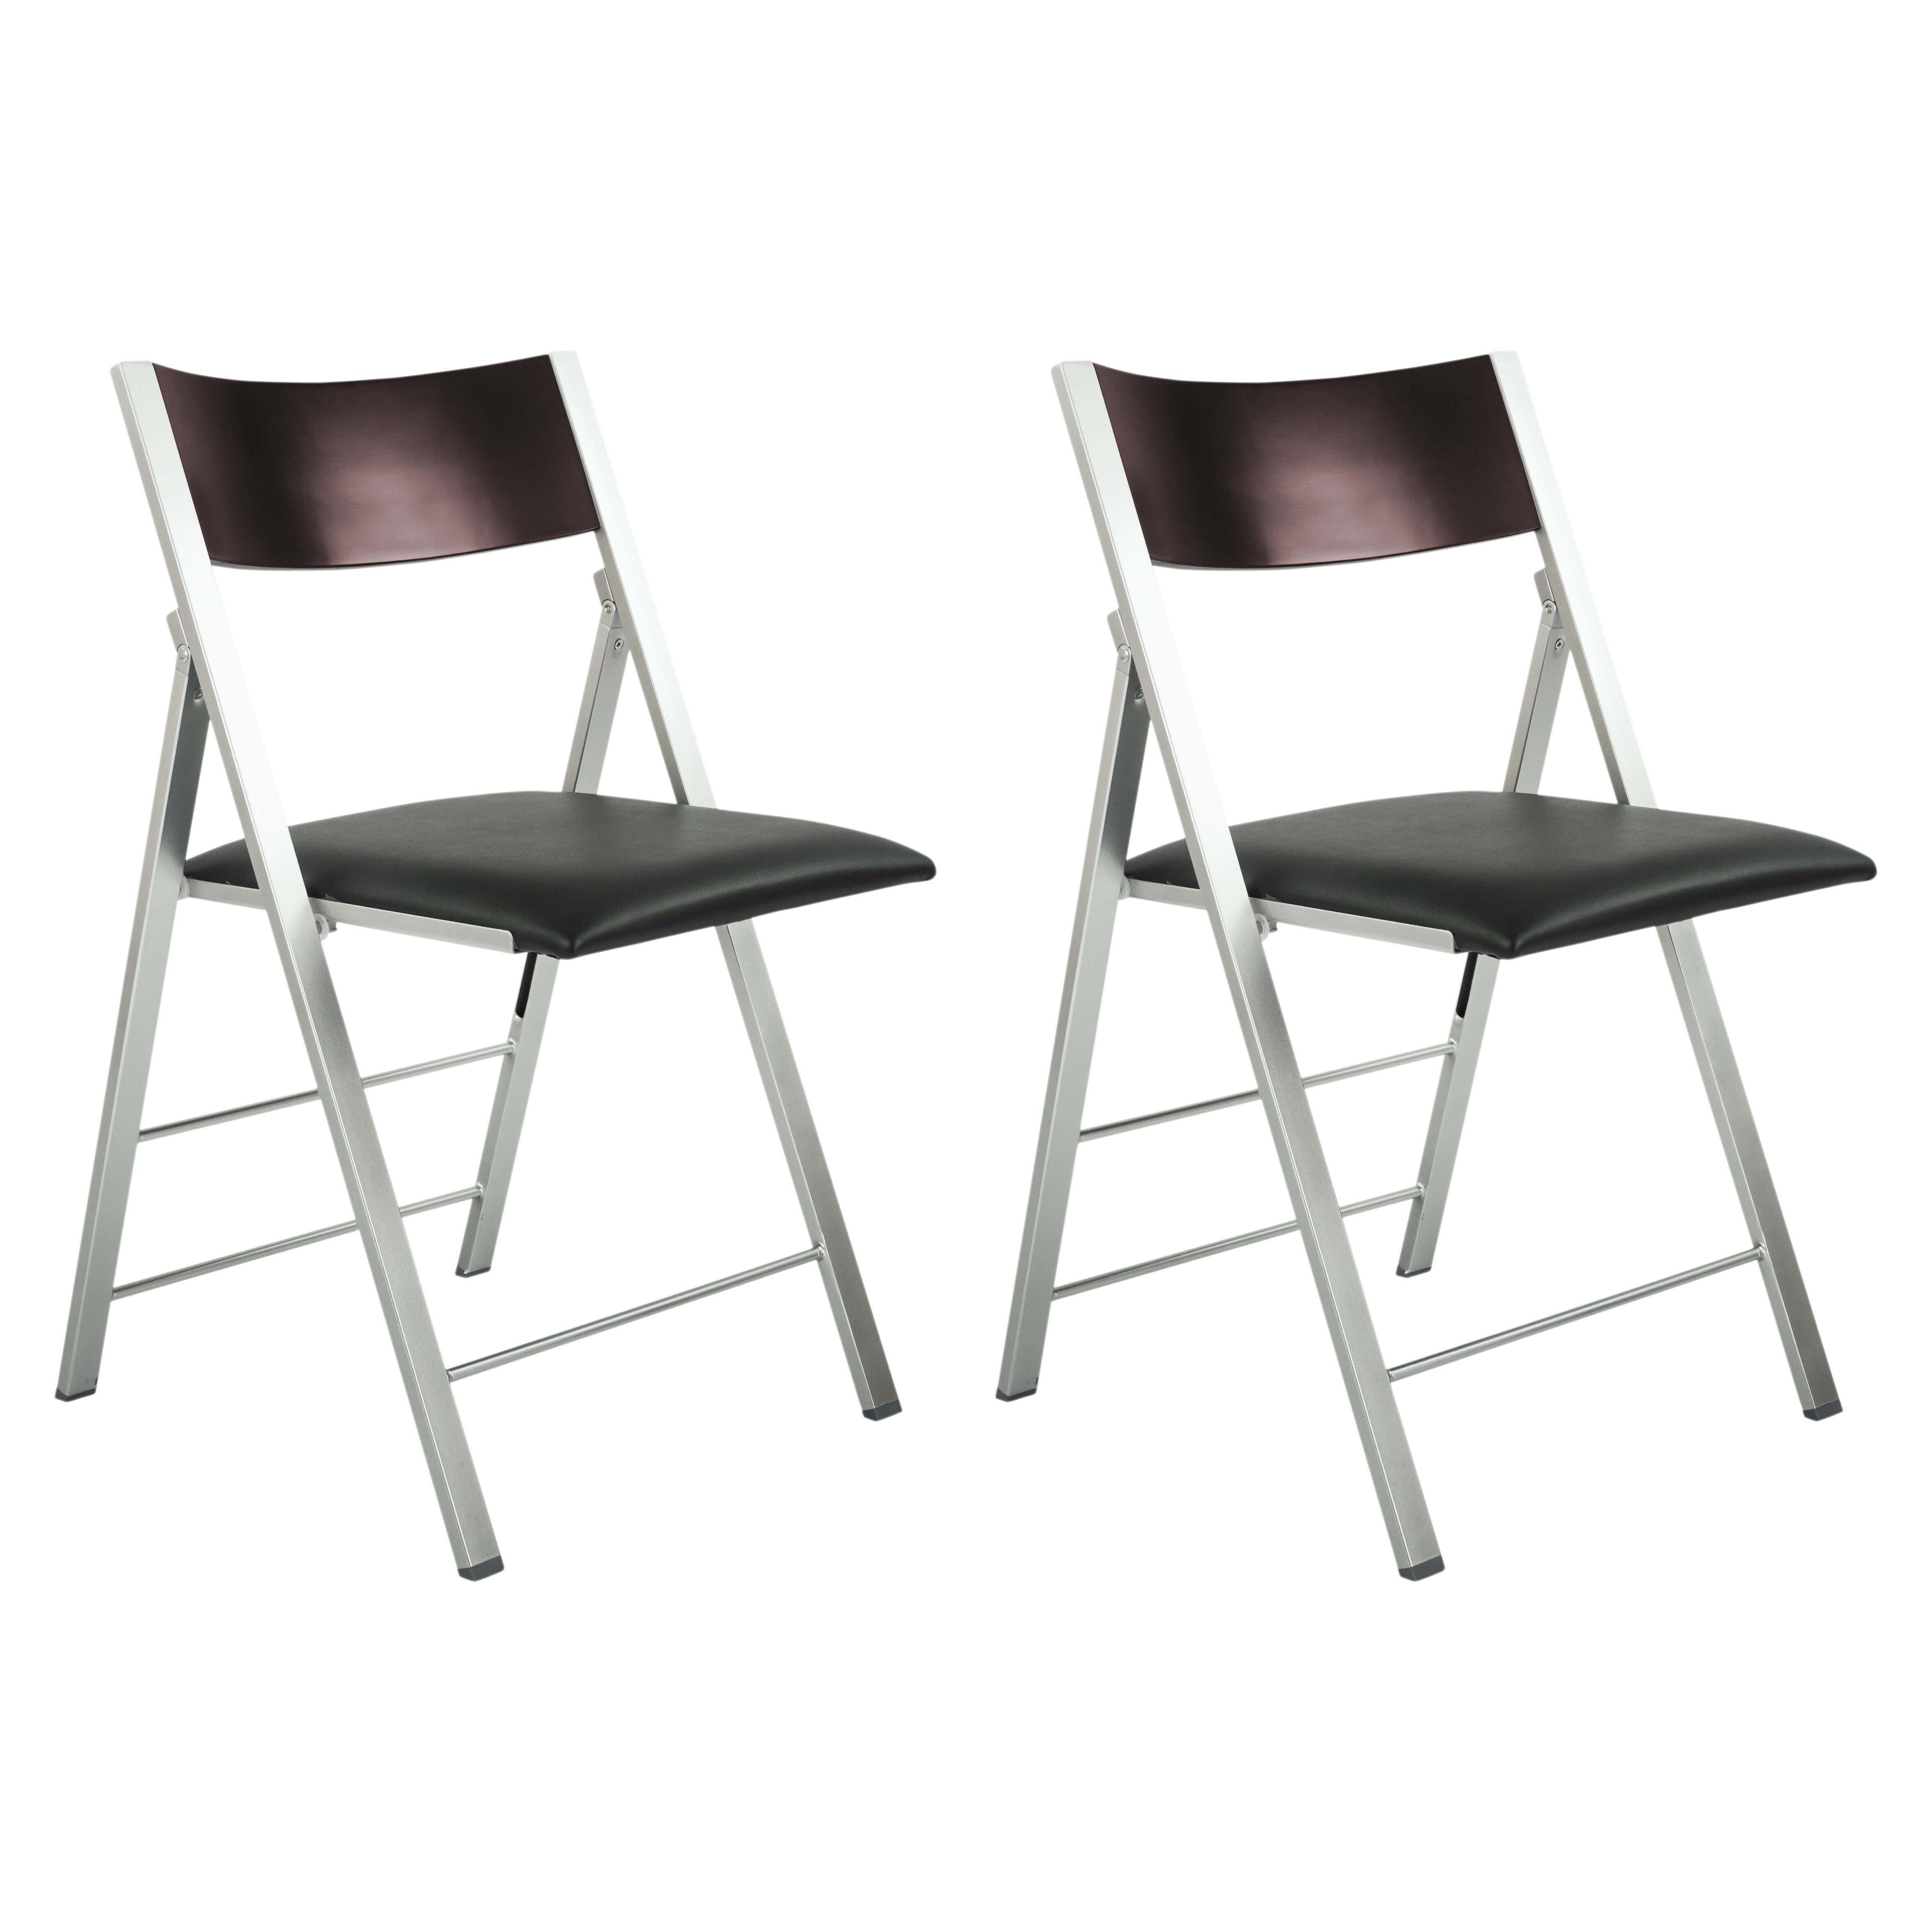 CORNER HOUSEWARES fort and Style Modern Metal Folding Chair